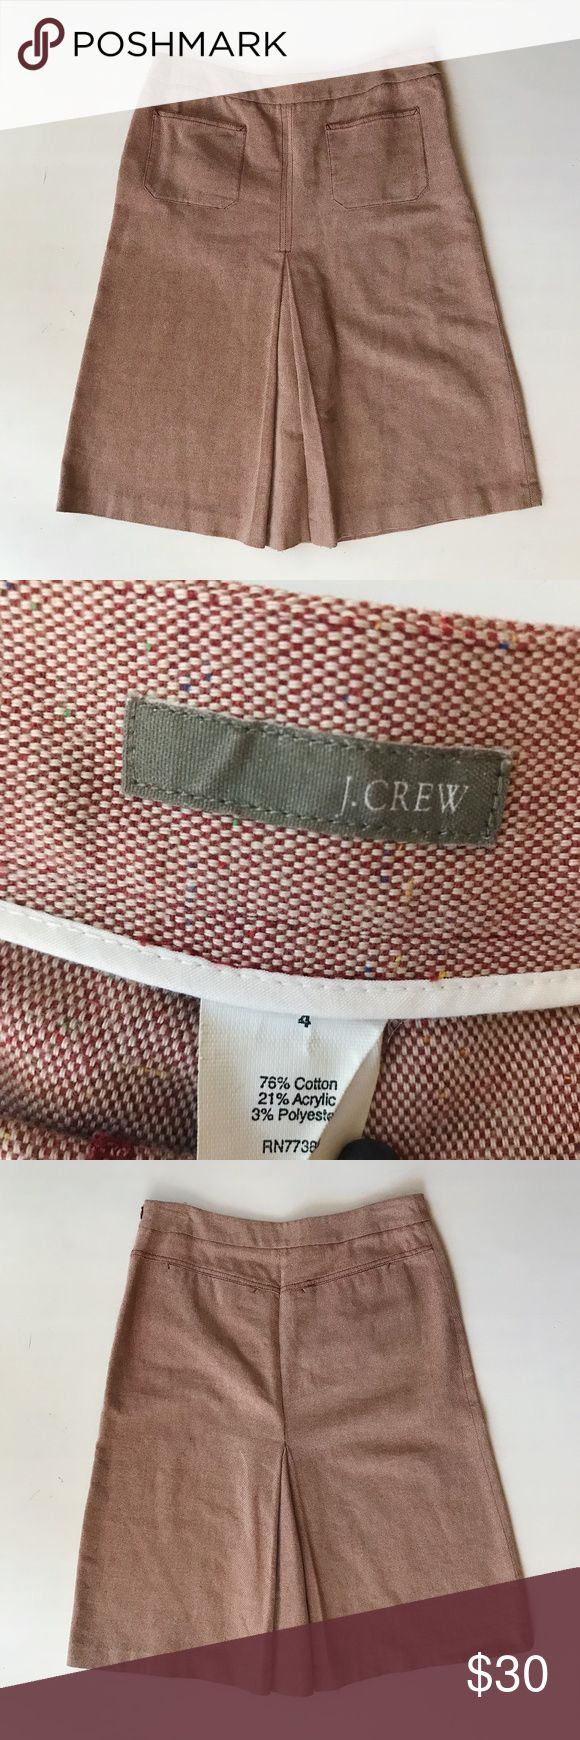 J. Crew A Line Skirt J. Crew skirt with box pleat in front and back, and two pockets in front. Brick red color. Gently used. J. Crew Skirts A-Line or Full